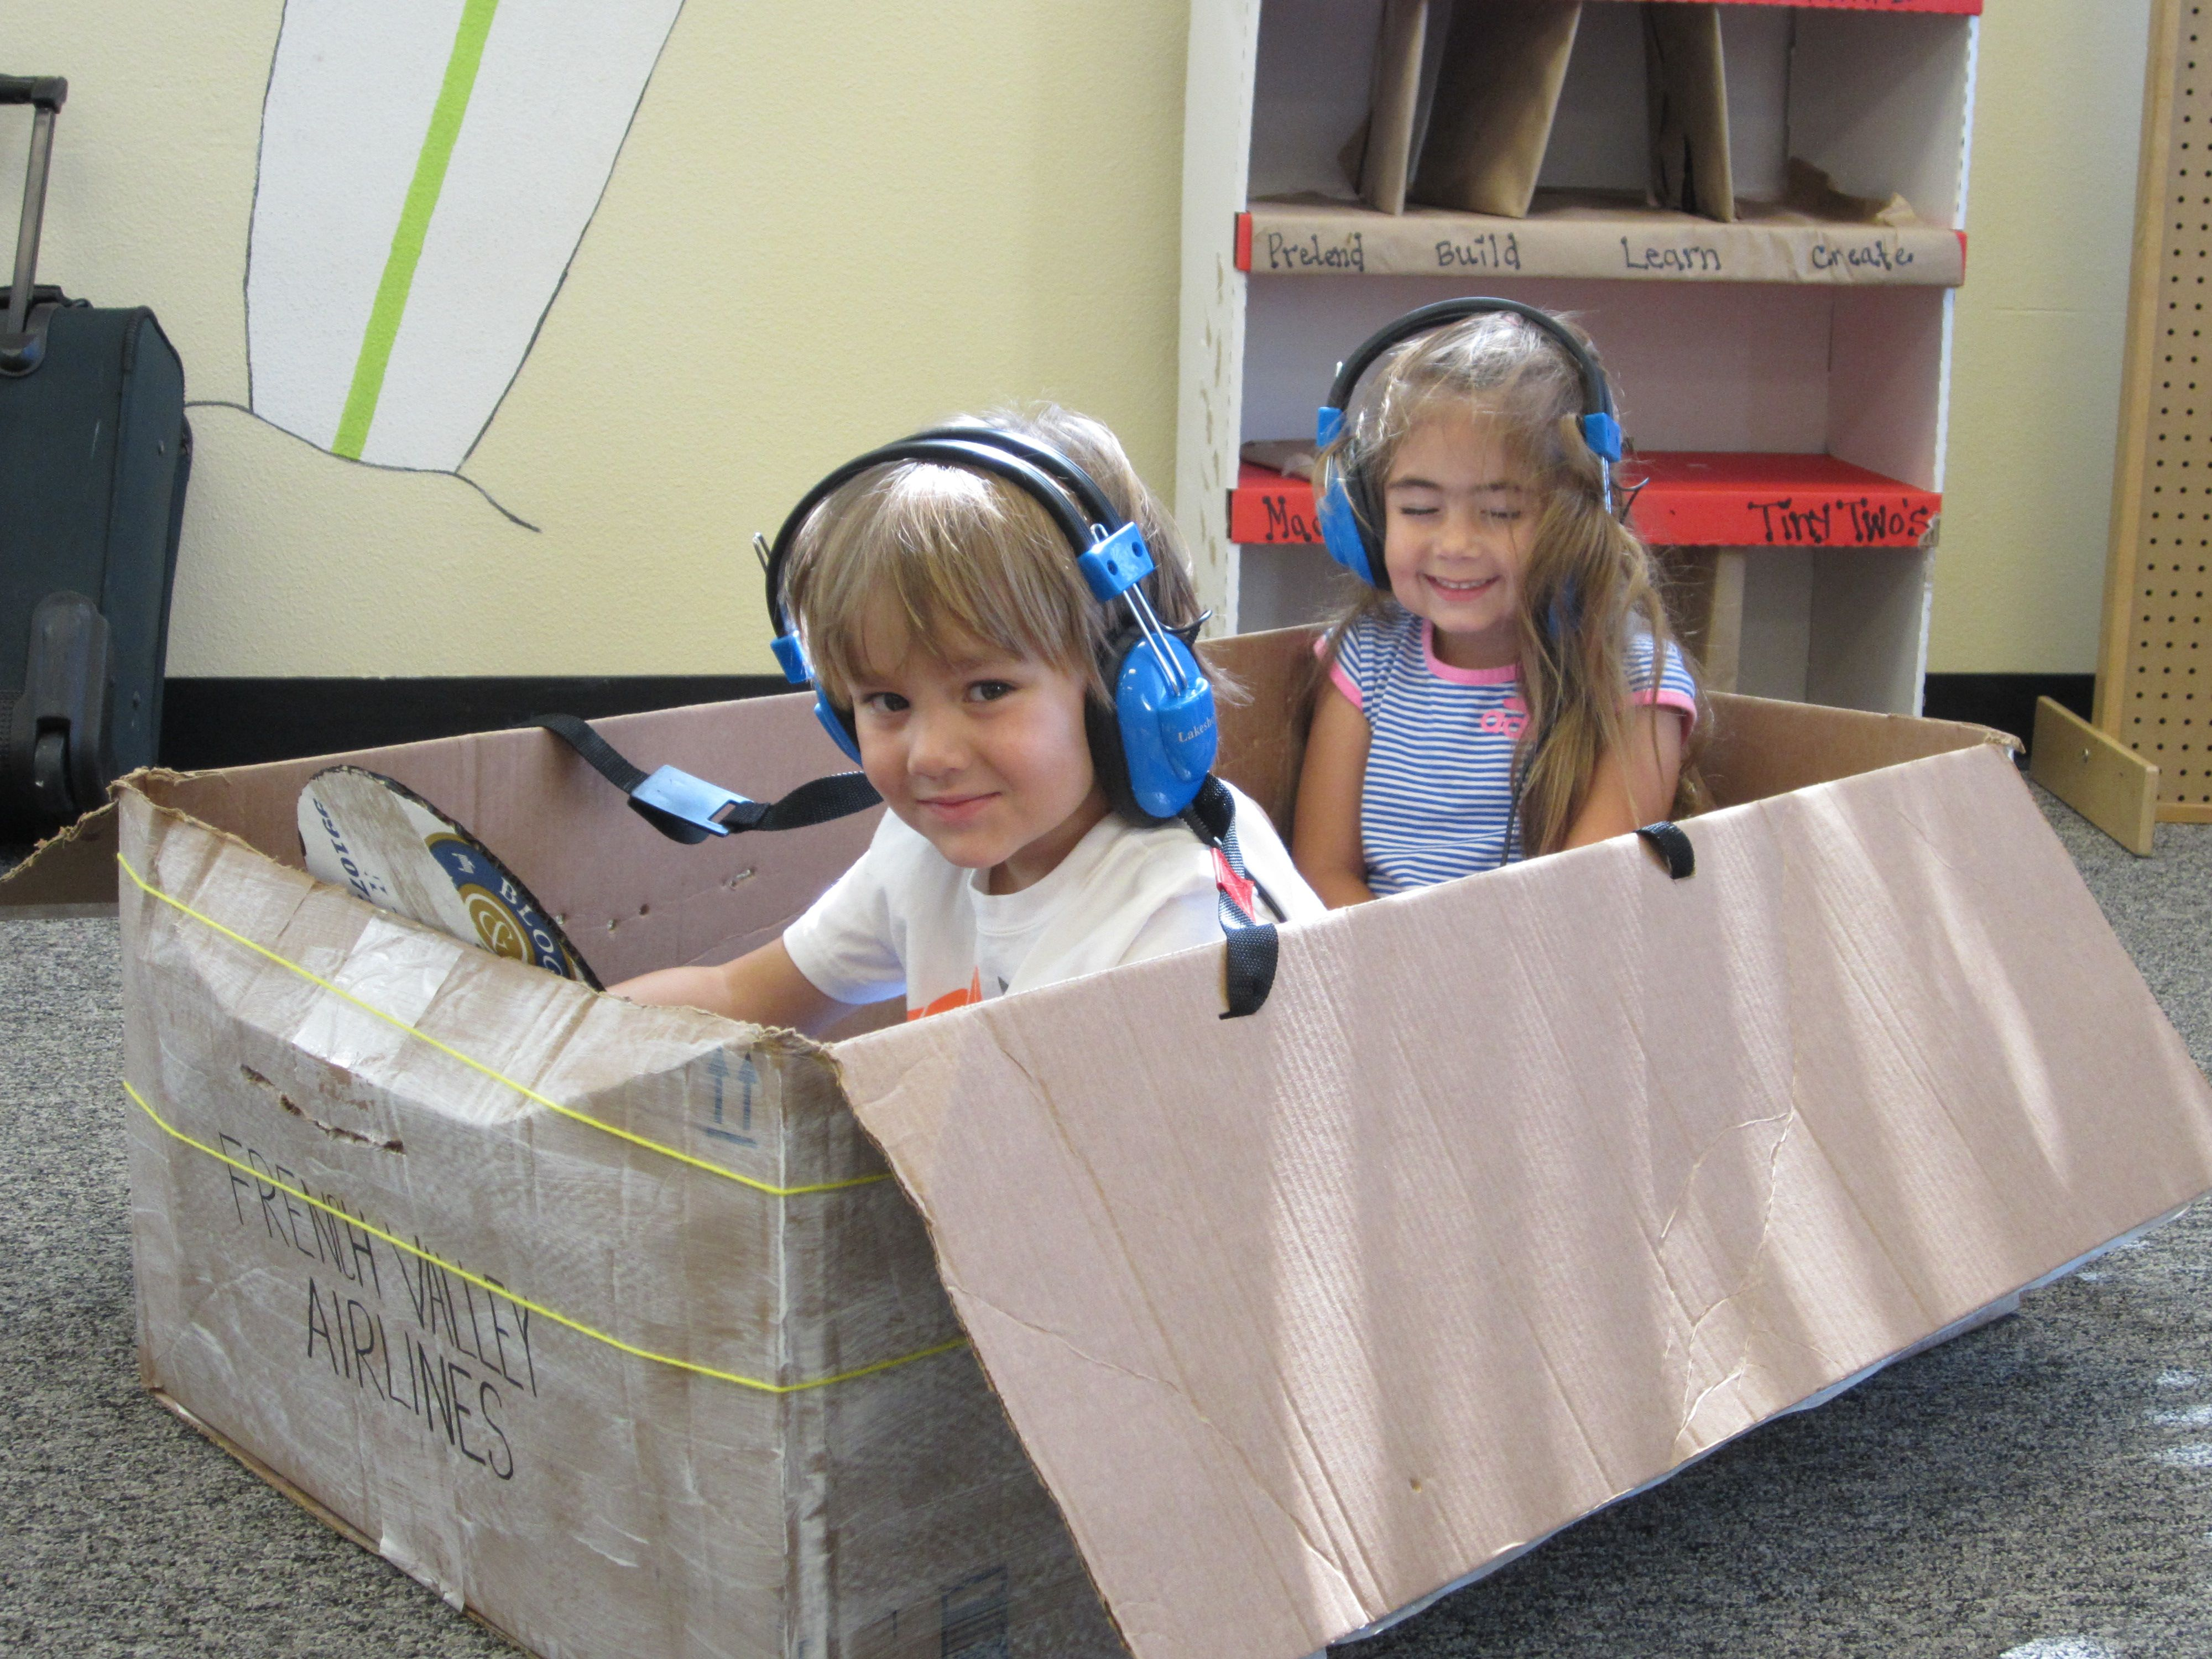 A Cardboard Box And Headphones From The Listening Center